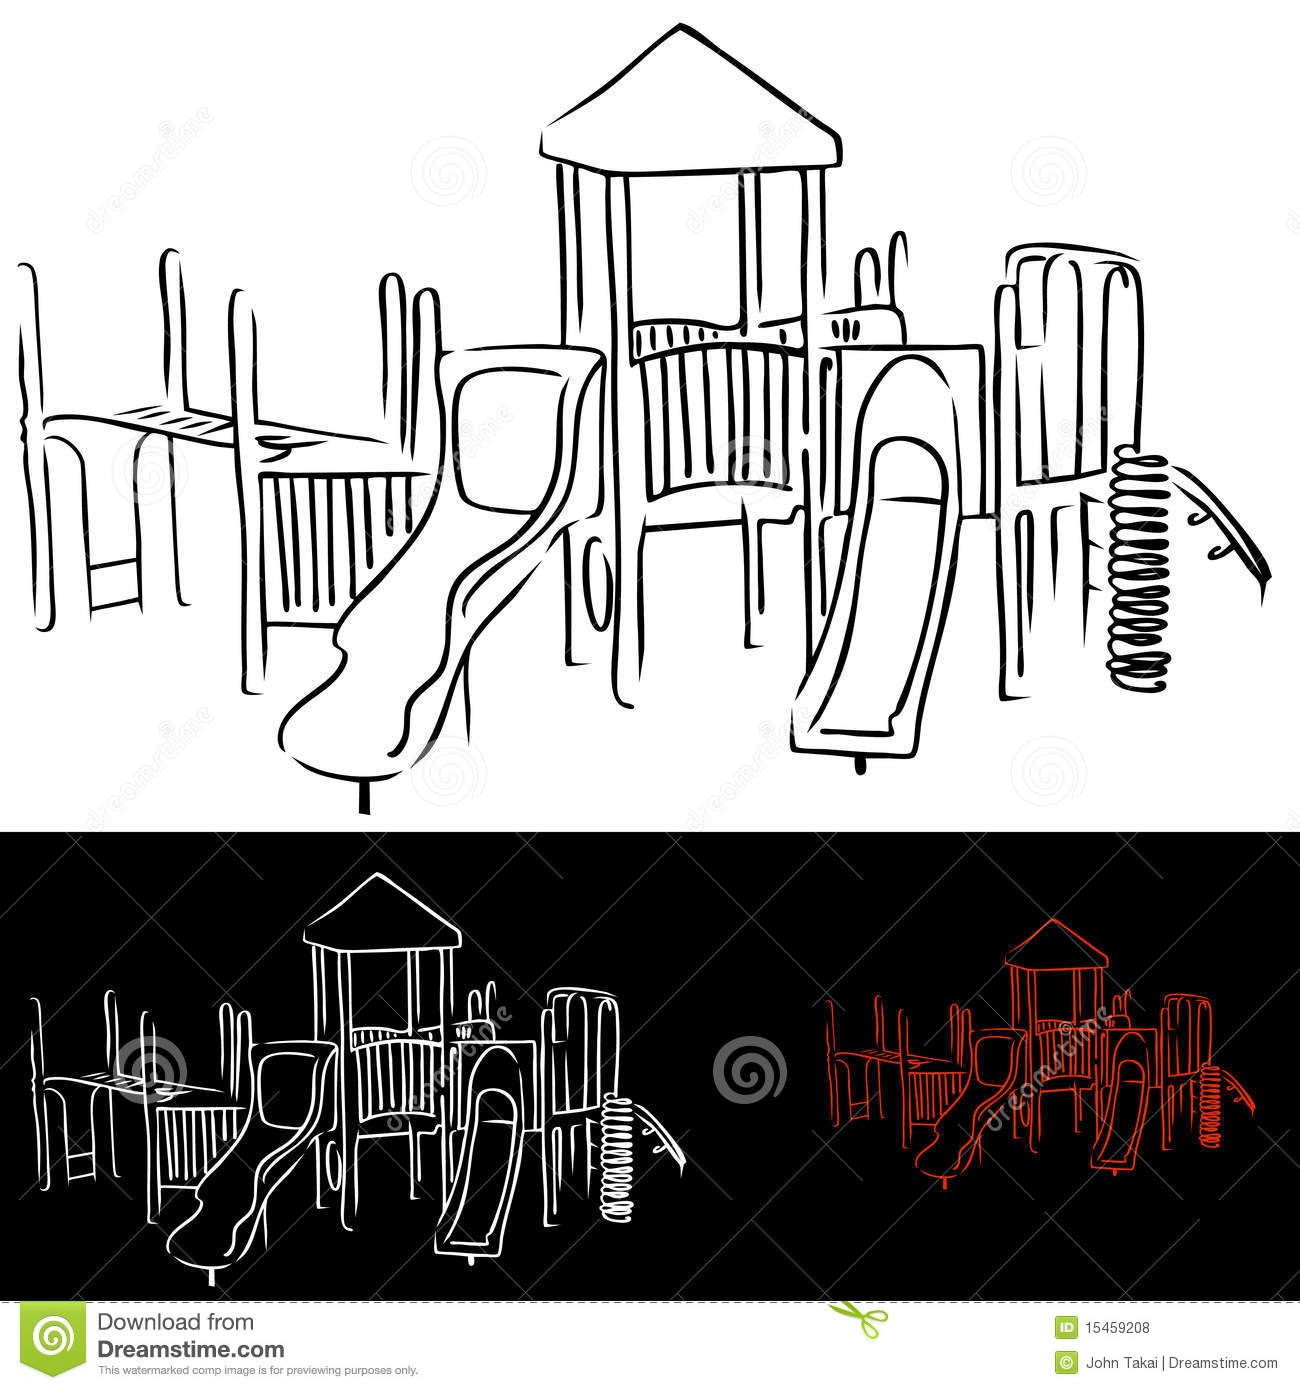 Displaying (18) Gallery Images For Daycare Clipart Black And White...